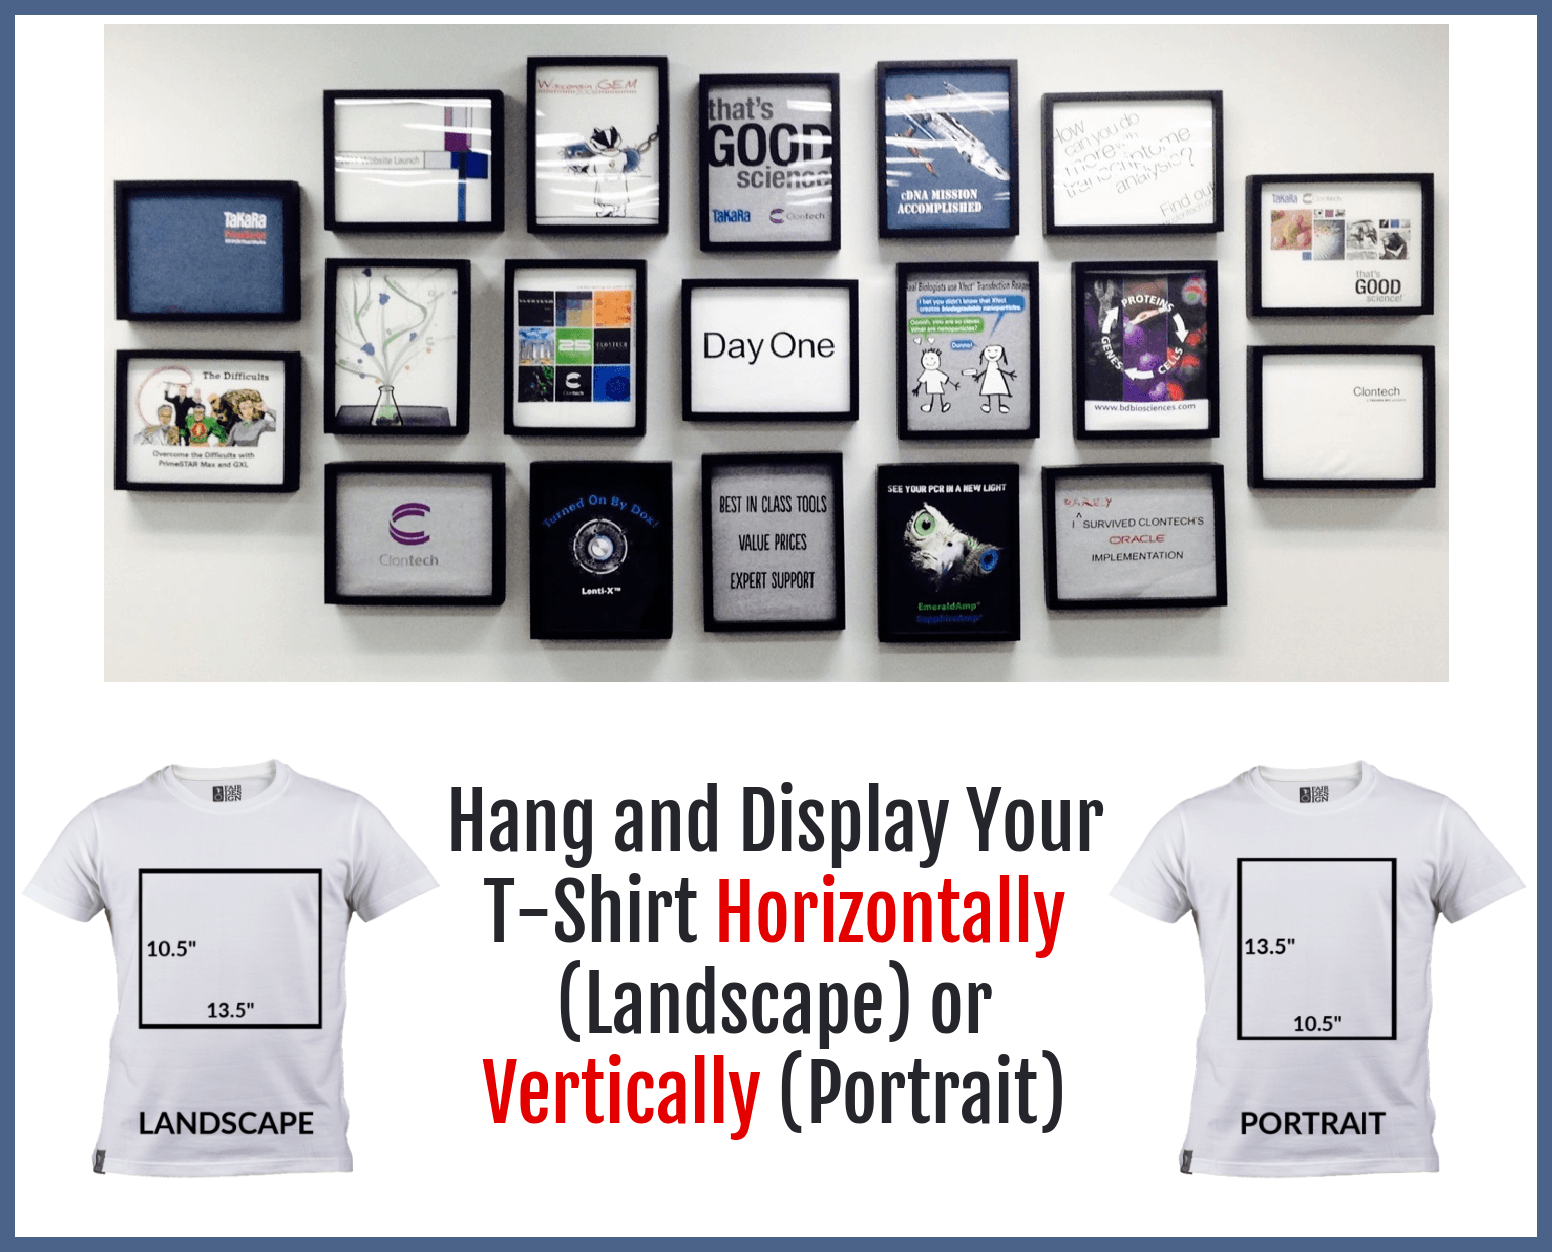 Hang and Display Your T-Shirt Horizontally (landscape) or Vertically (portrait) with Shart T-Shirt Frames